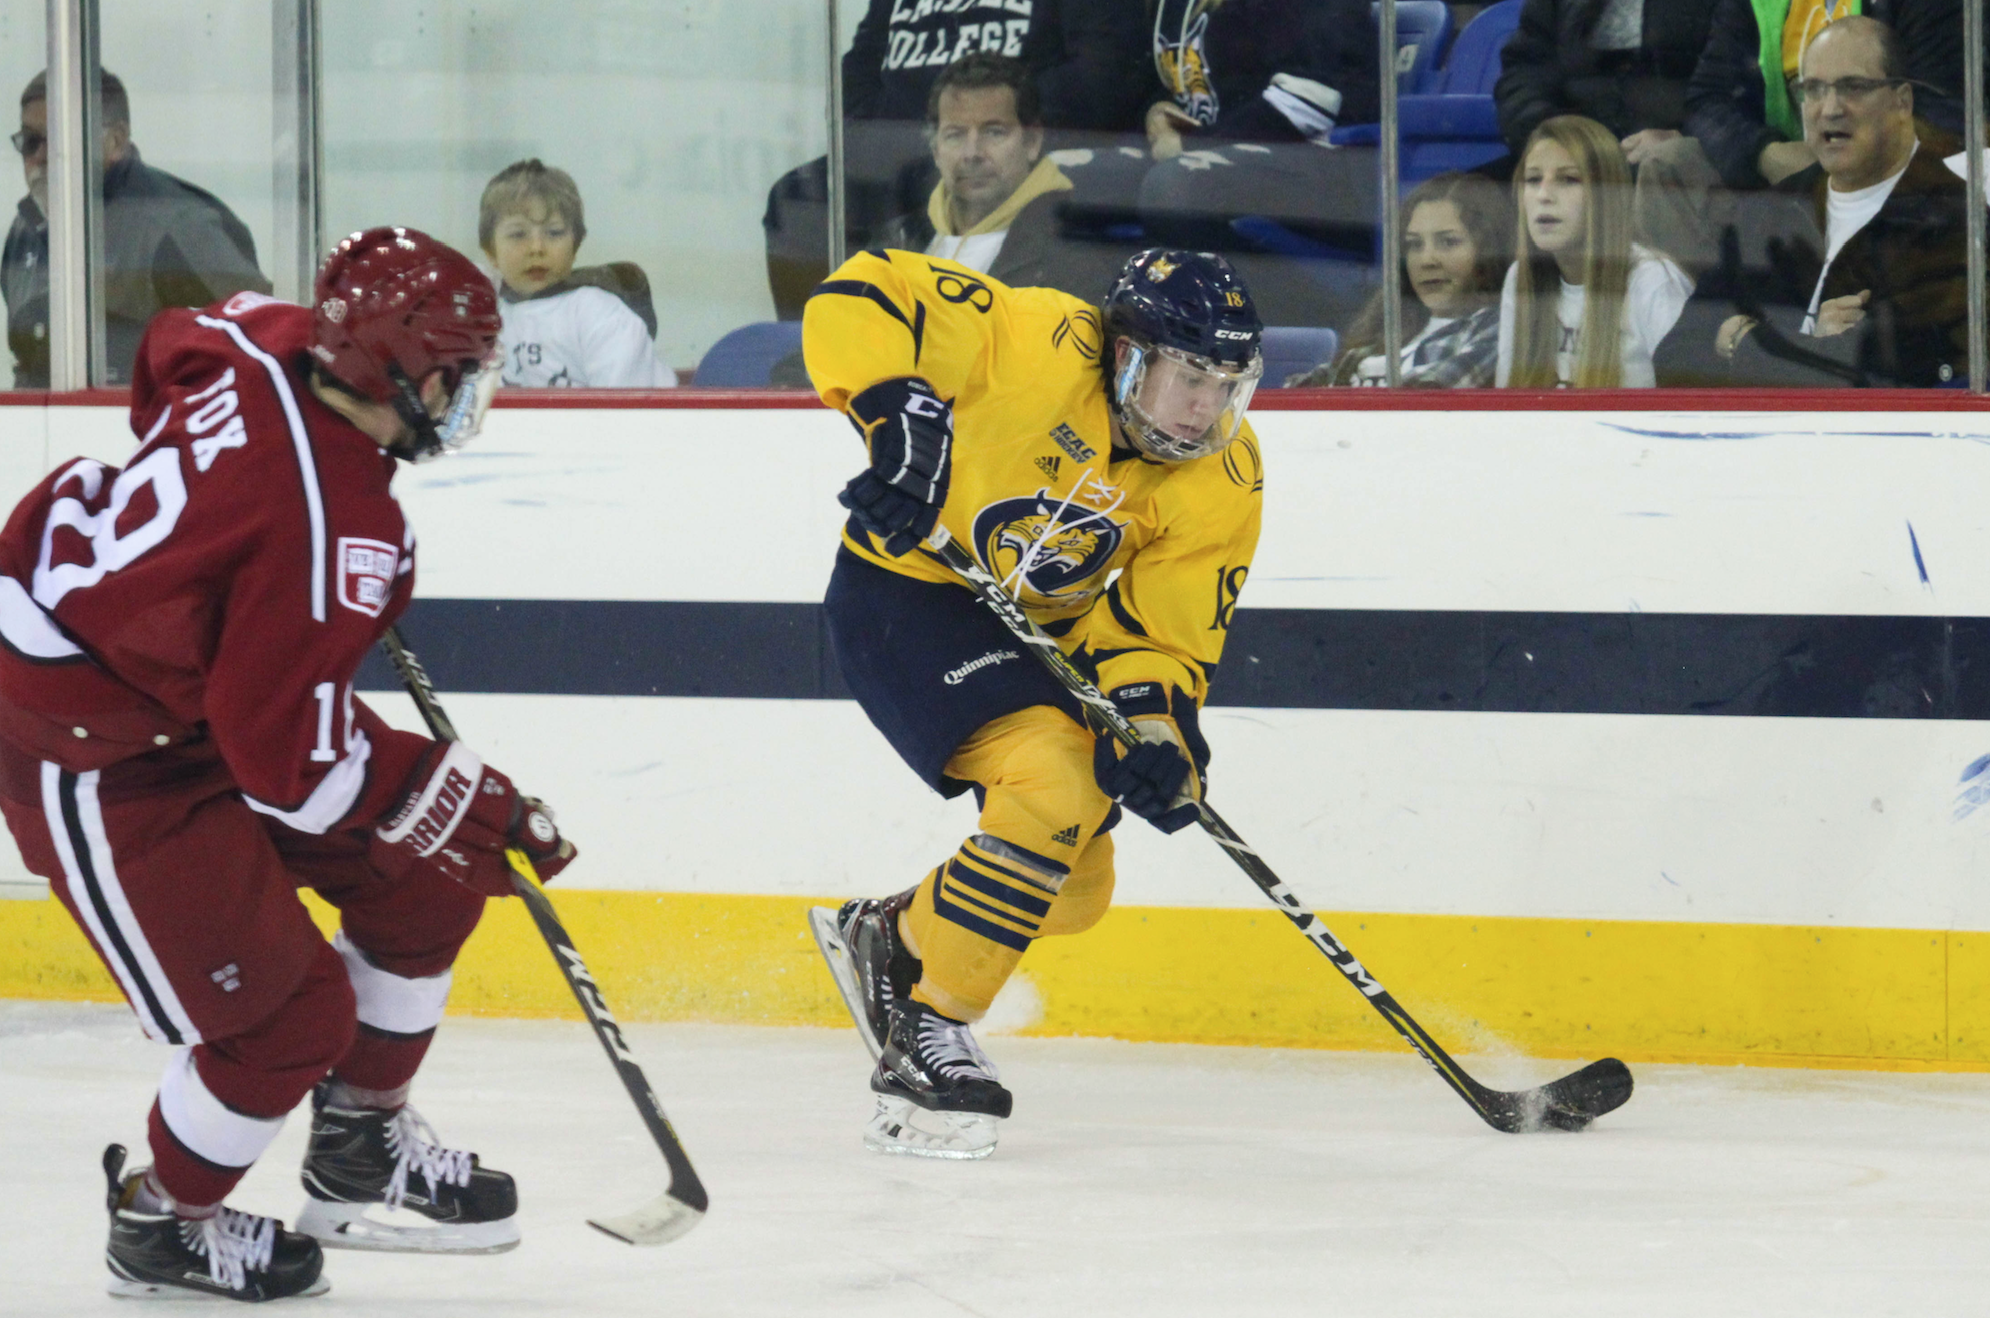 Quinnipiac men's ice hockey falls to Harvard